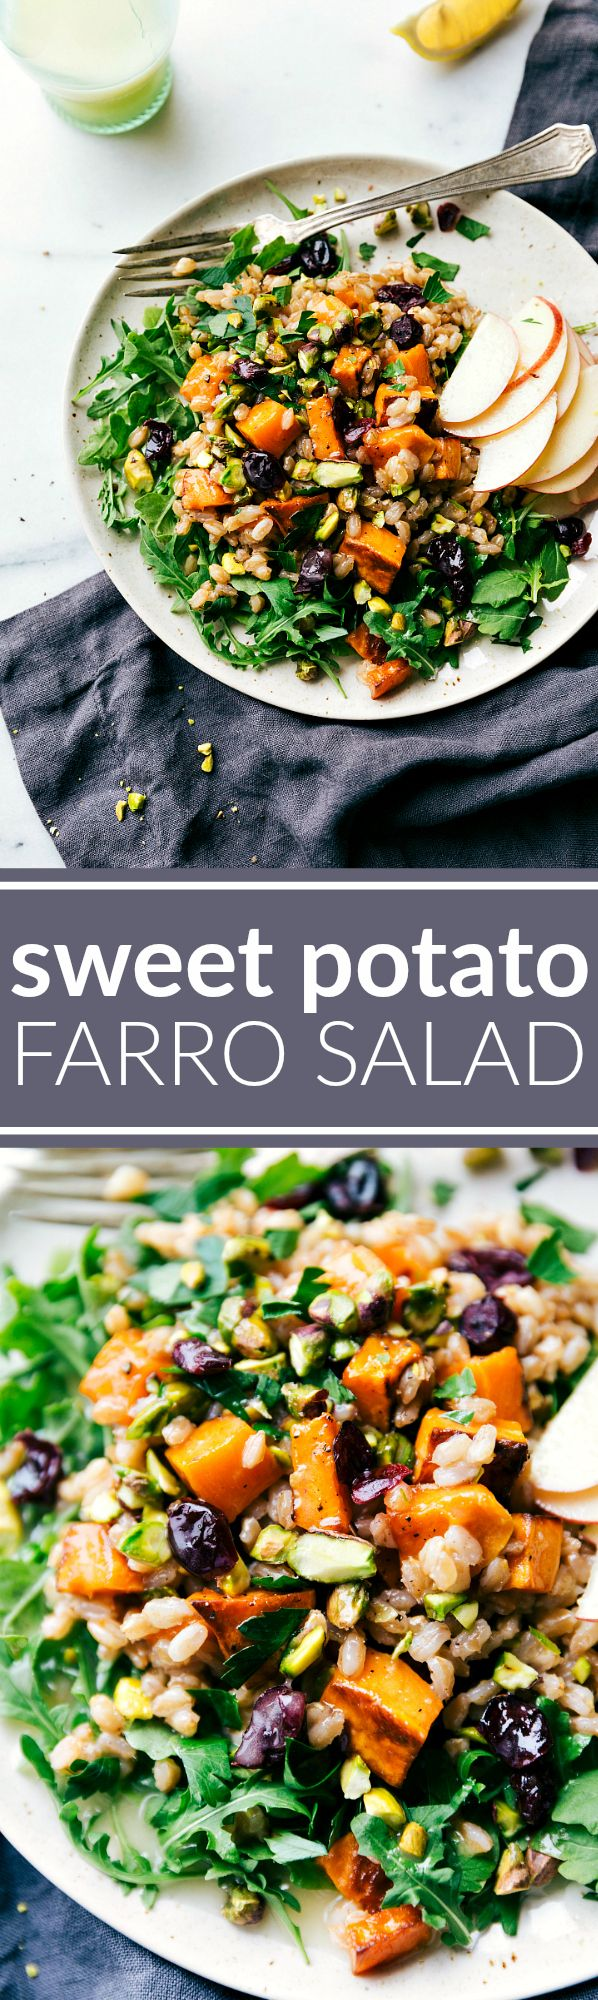 ROASTED SWEET POTATO SALAD. A hearty, healthy, and filling salad -- sweet apple cider farro, roasted sweet potatoes, arugula, and an easy blender lemon dressing. chelseasmessyapron.com #AlessiFoods #ad